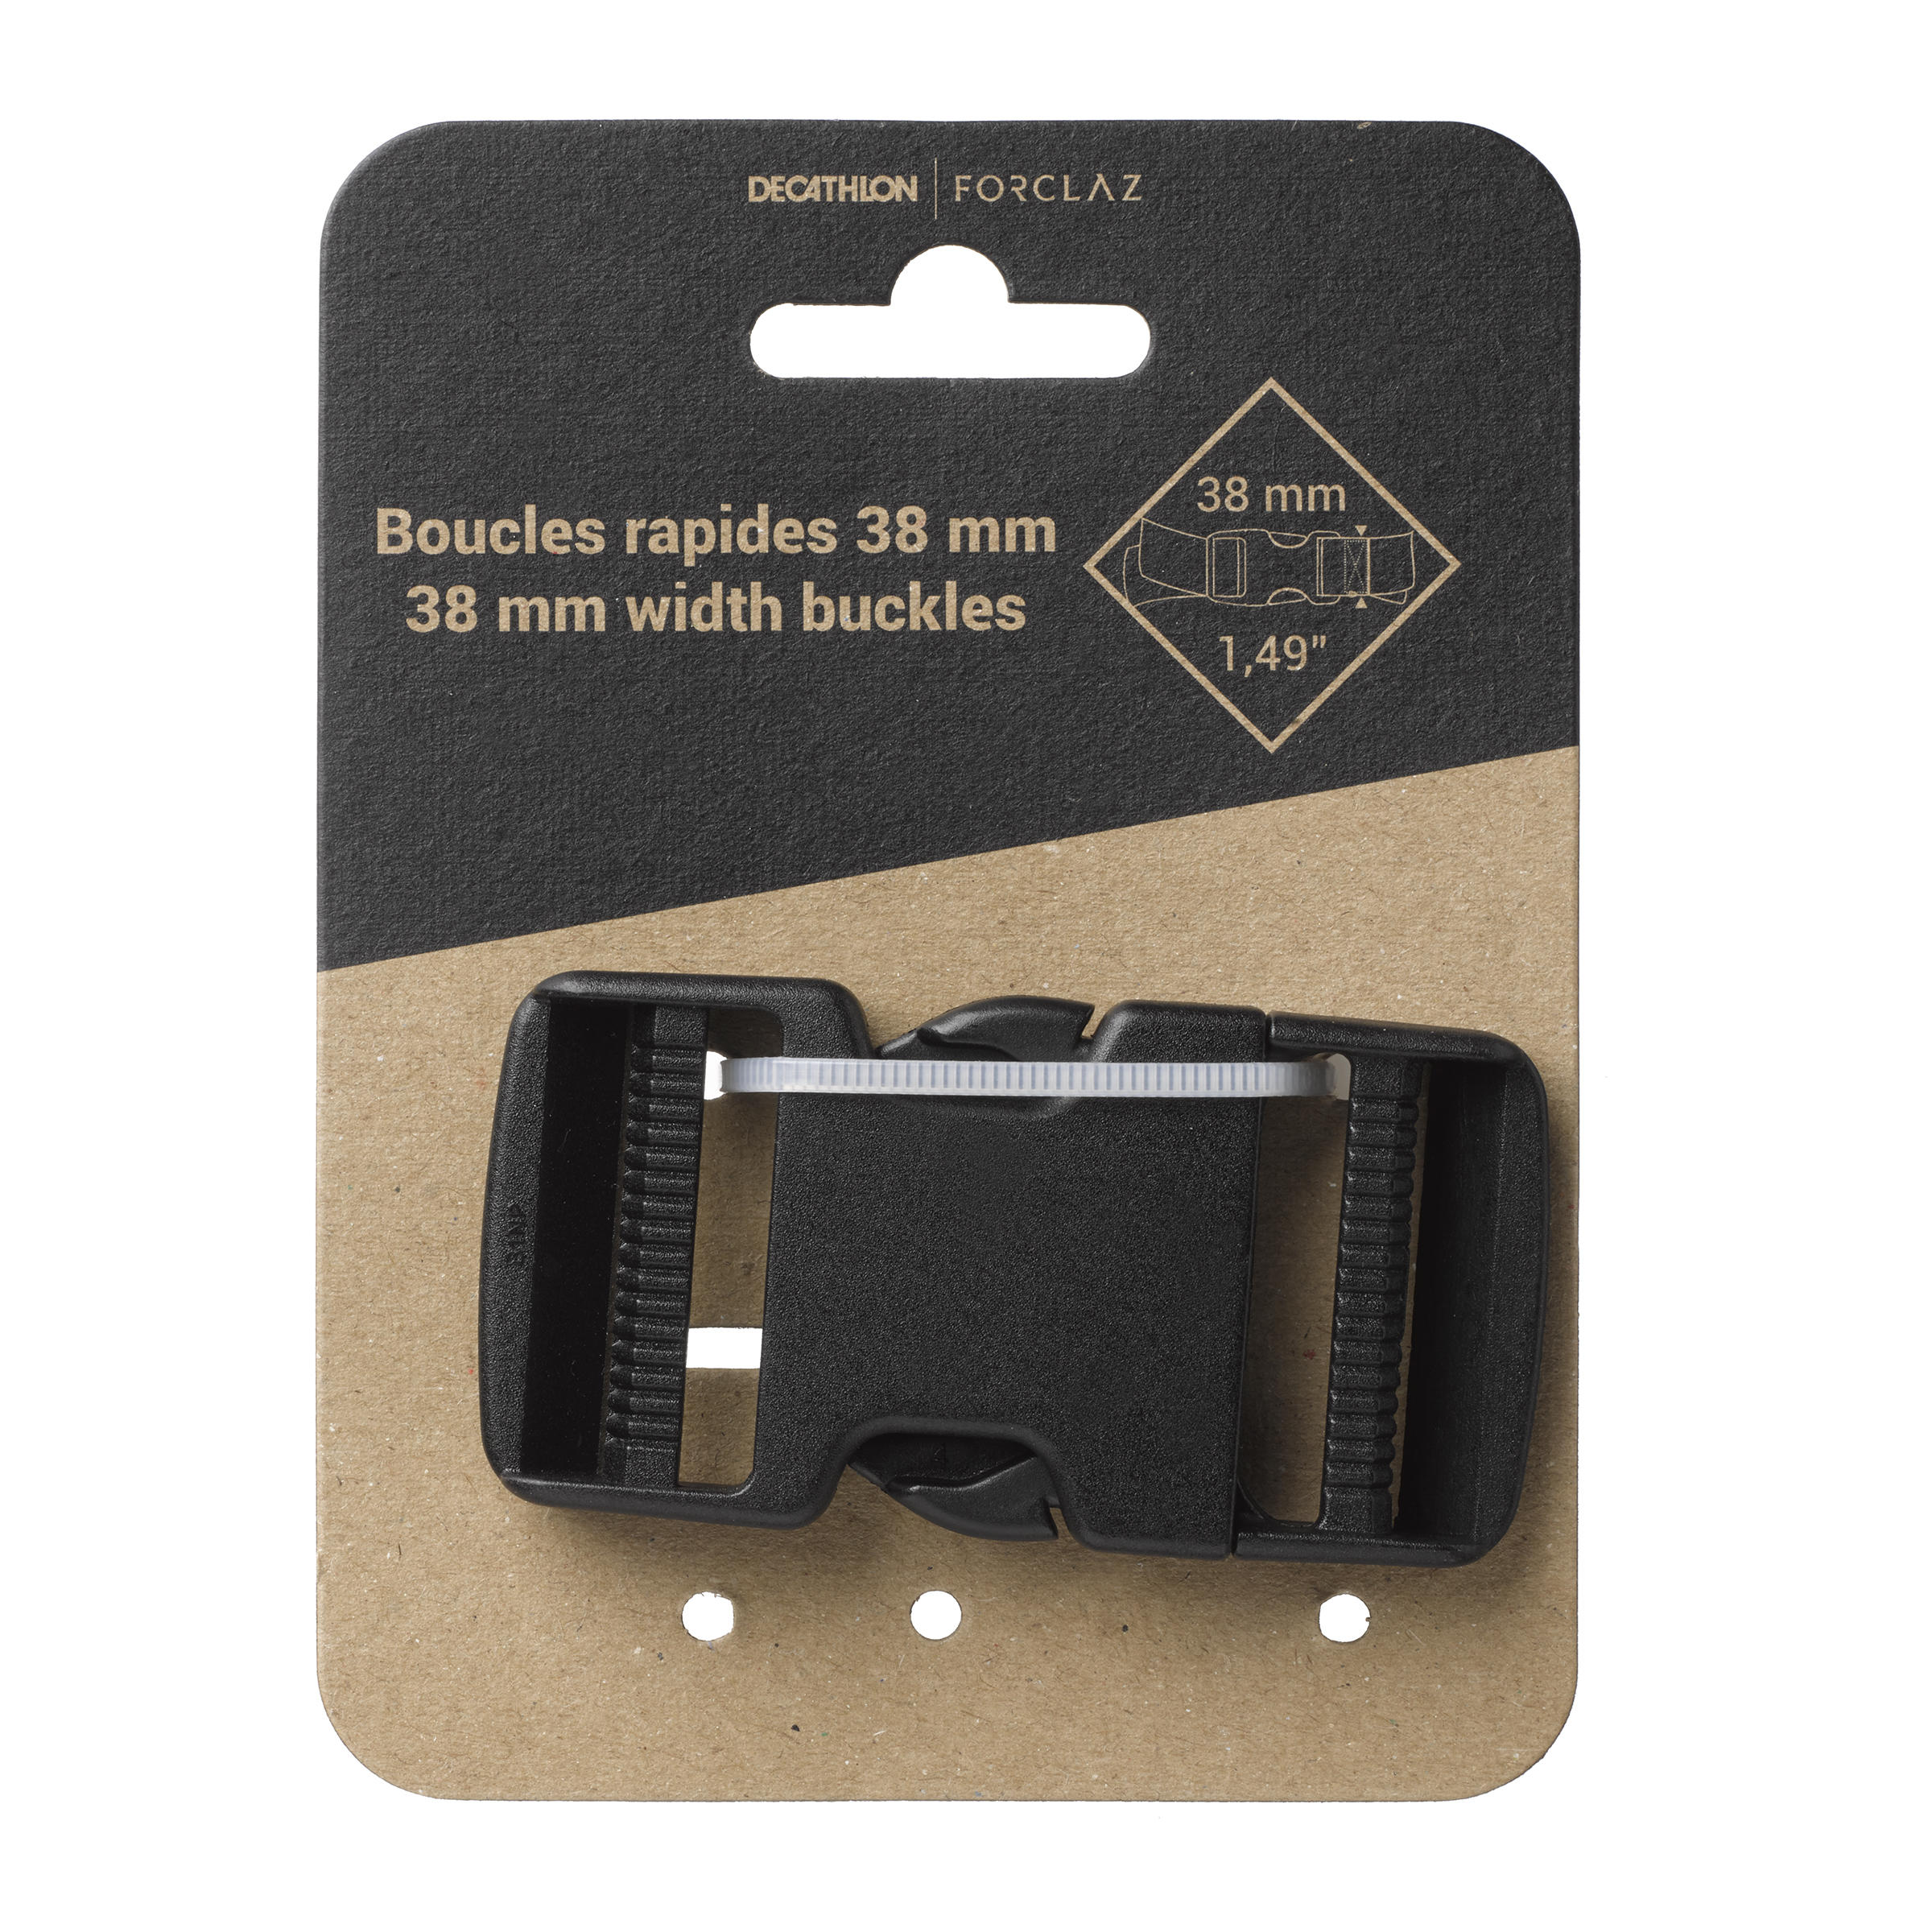 1 38 mm Quick Buckle